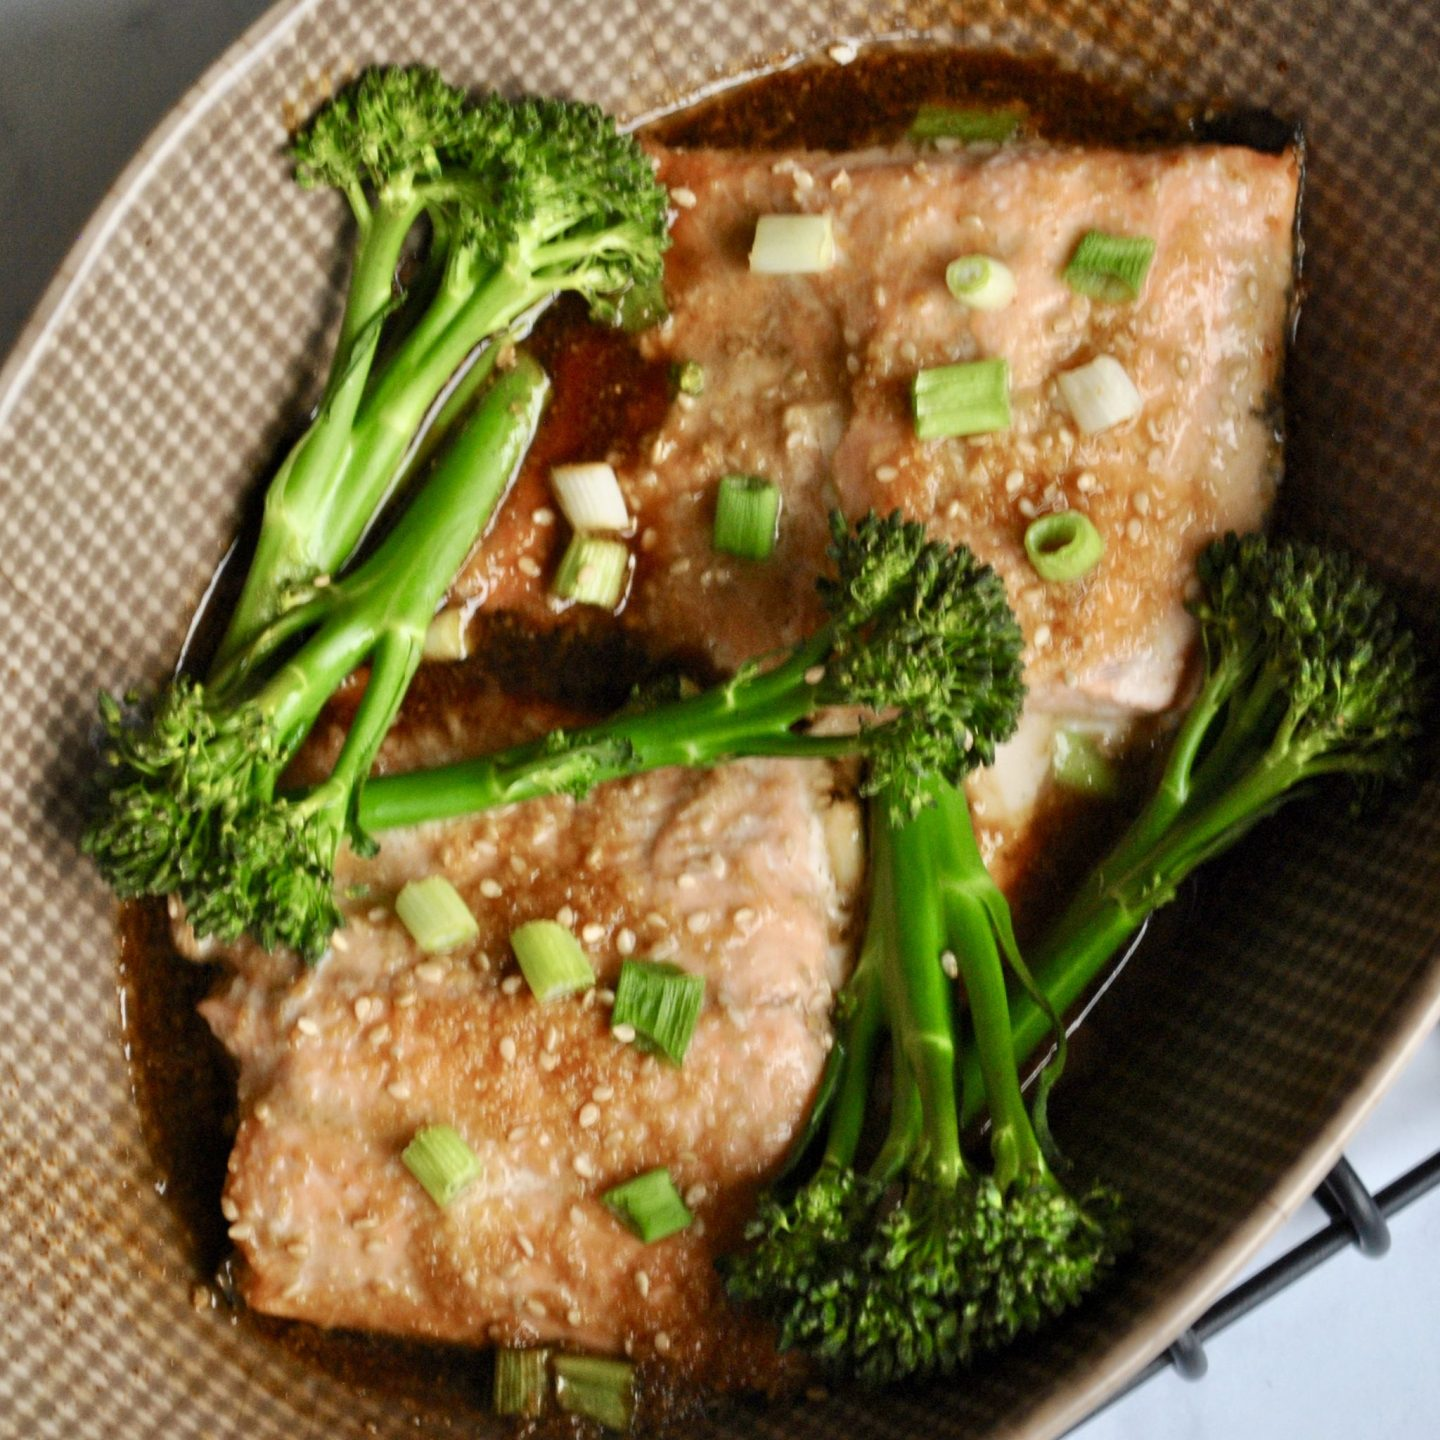 Teriyaki Salmon, Wild Alaska Salmon Recipe, Honey Glaze, Eli Brecher